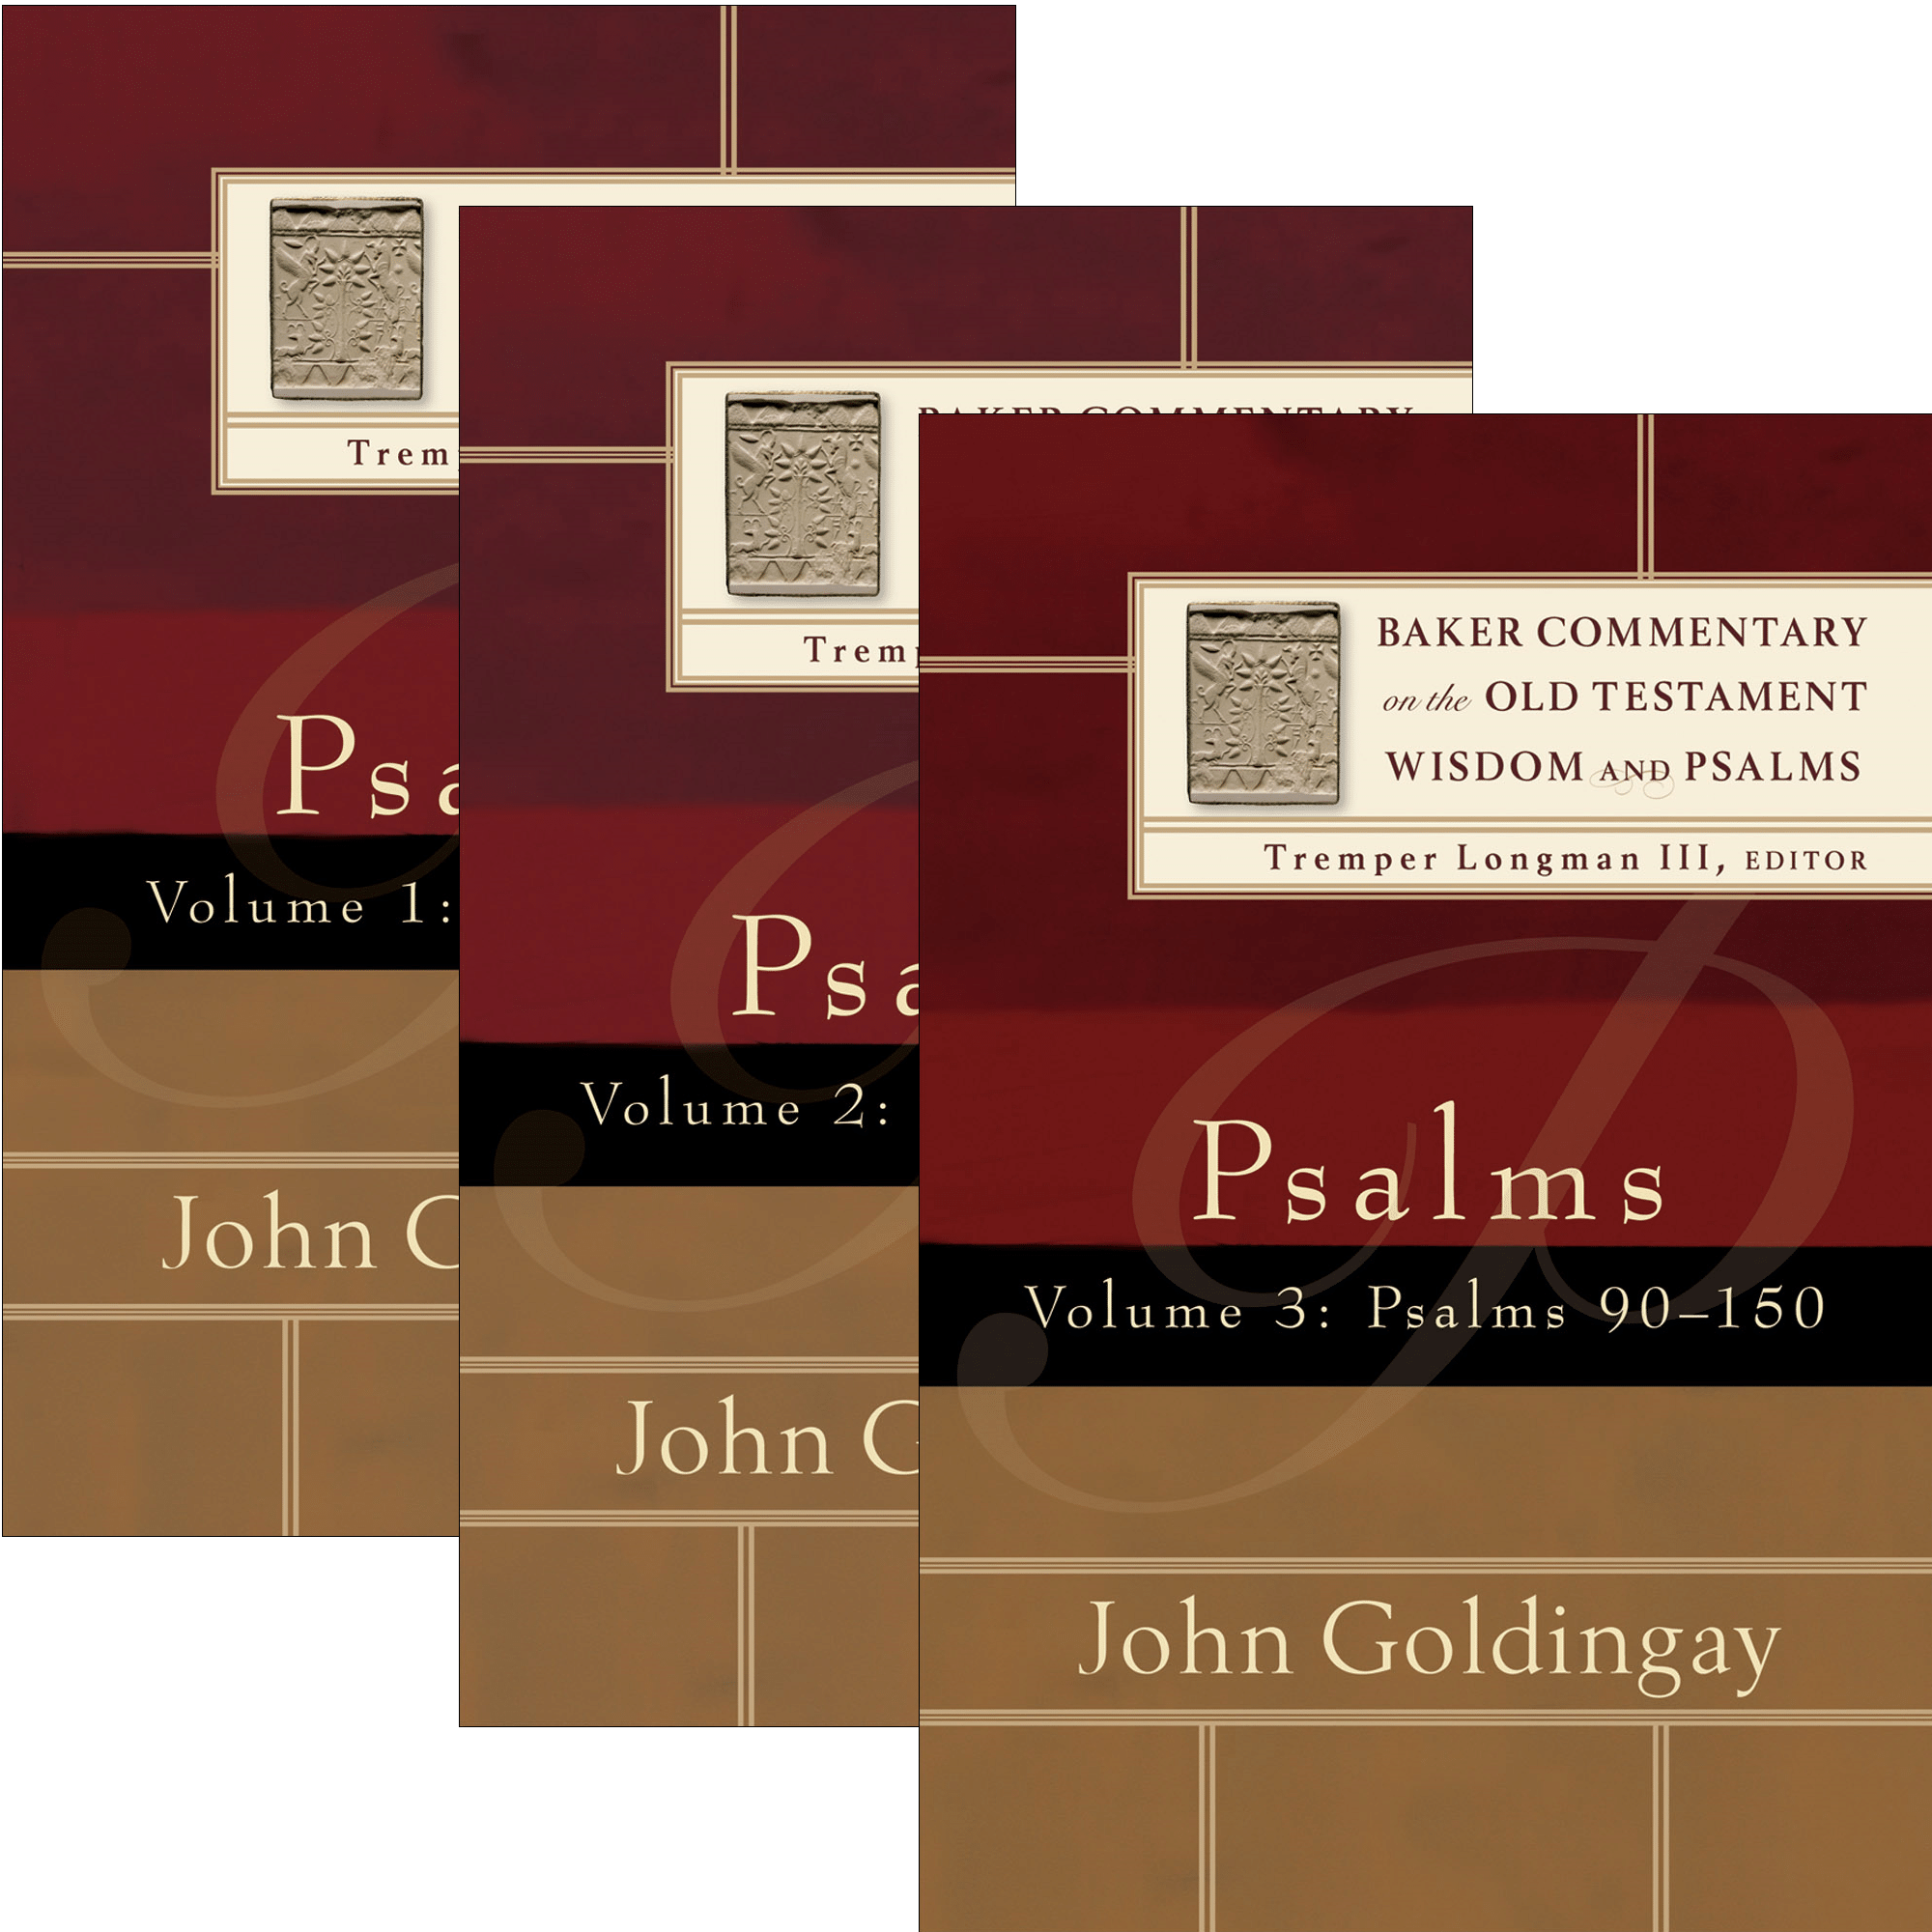 Psalms, 3 vols. (Baker Commentary on the Old Testament Wisdom and Psalms | BCOTWP)